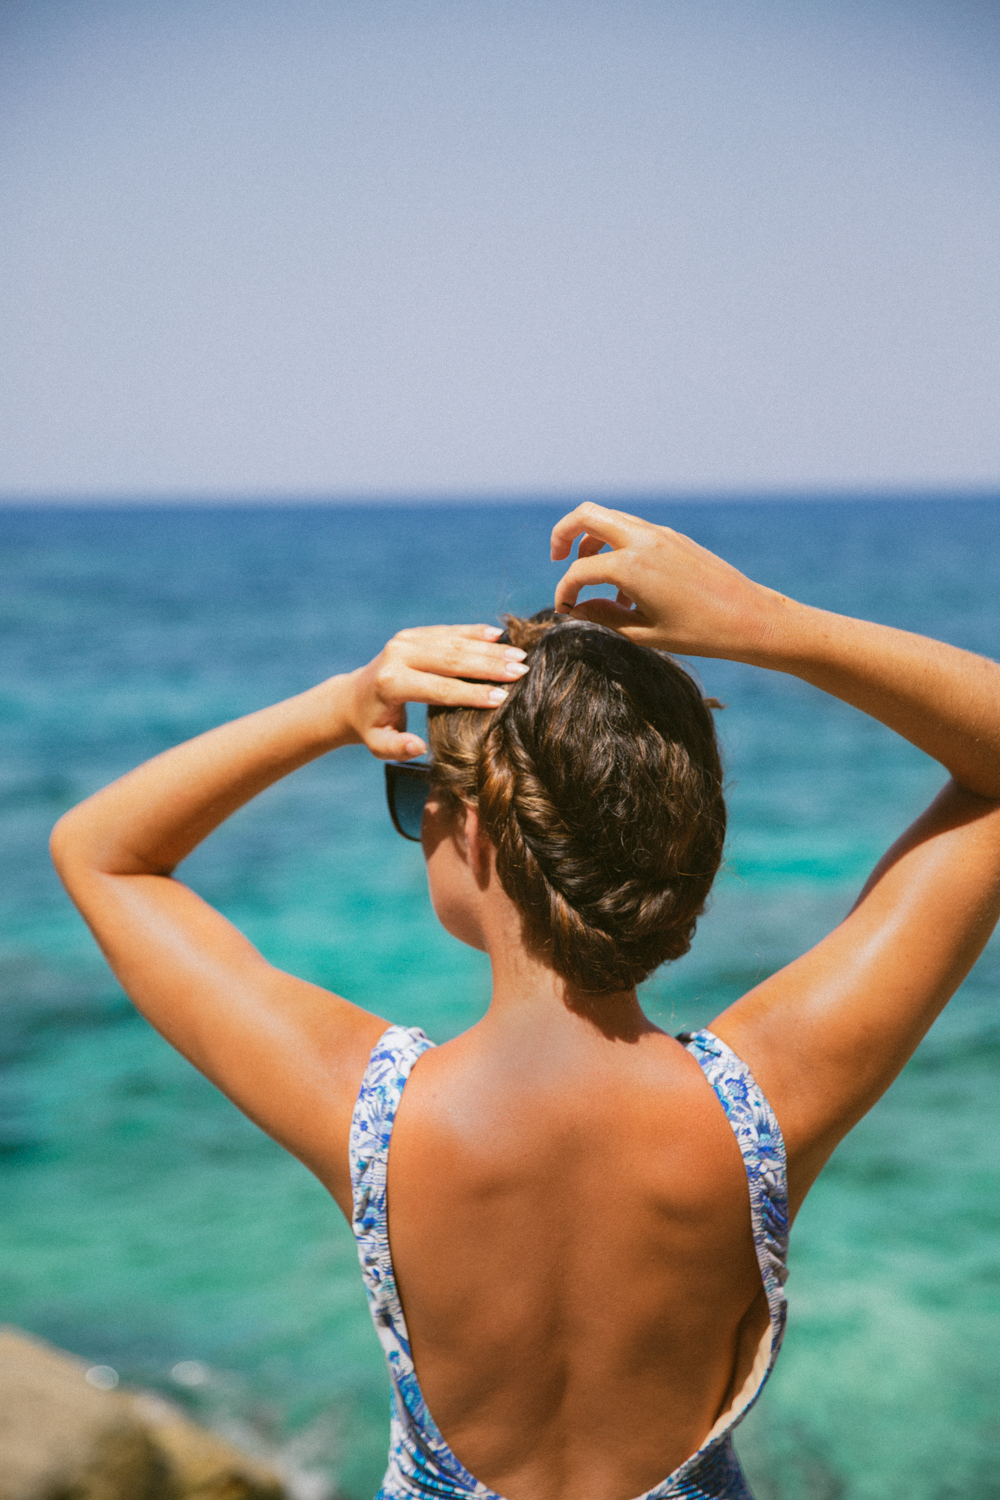 Speedy simple summer up-do tutorial - Perfect from beach to bar!